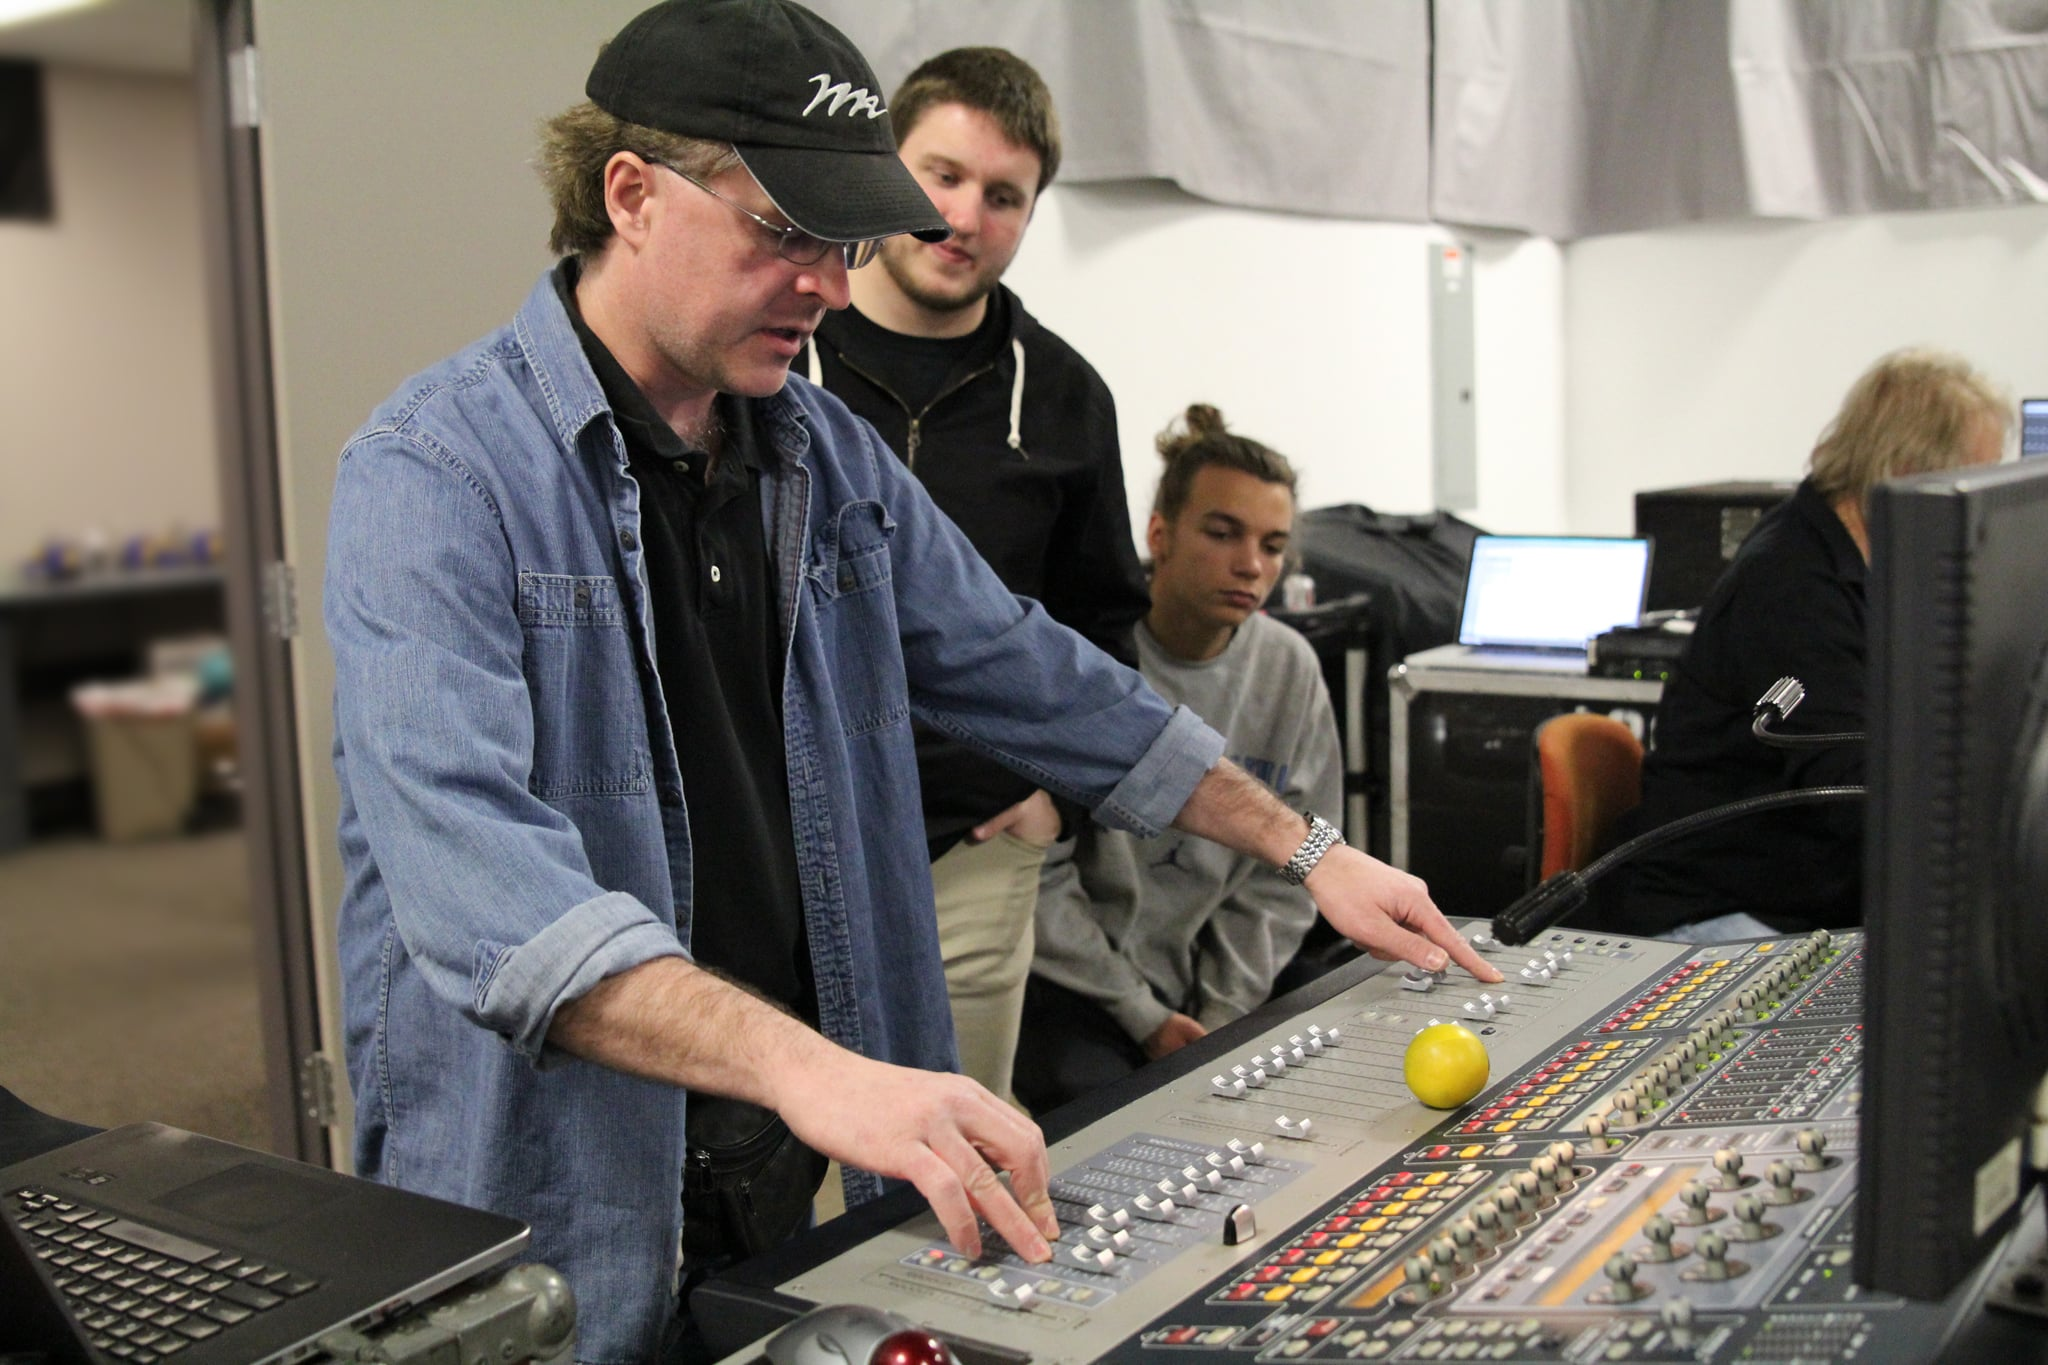 Brian Persall, Guest Engineer